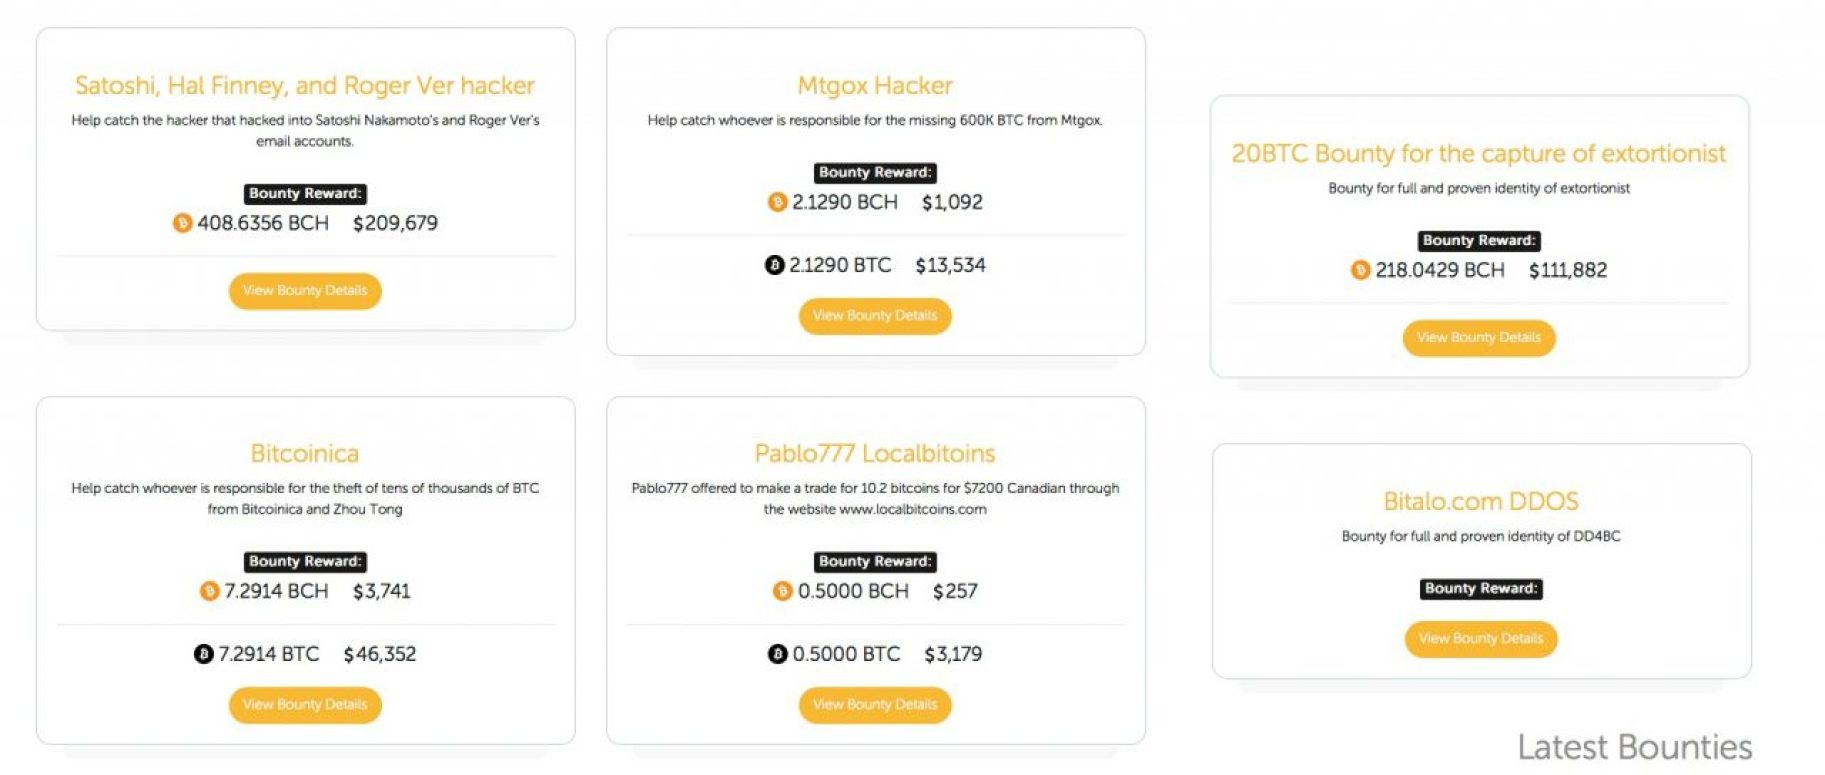 Crowd Source or Complete Tasks With Bitcoin.com's Bounty Hunter Portal